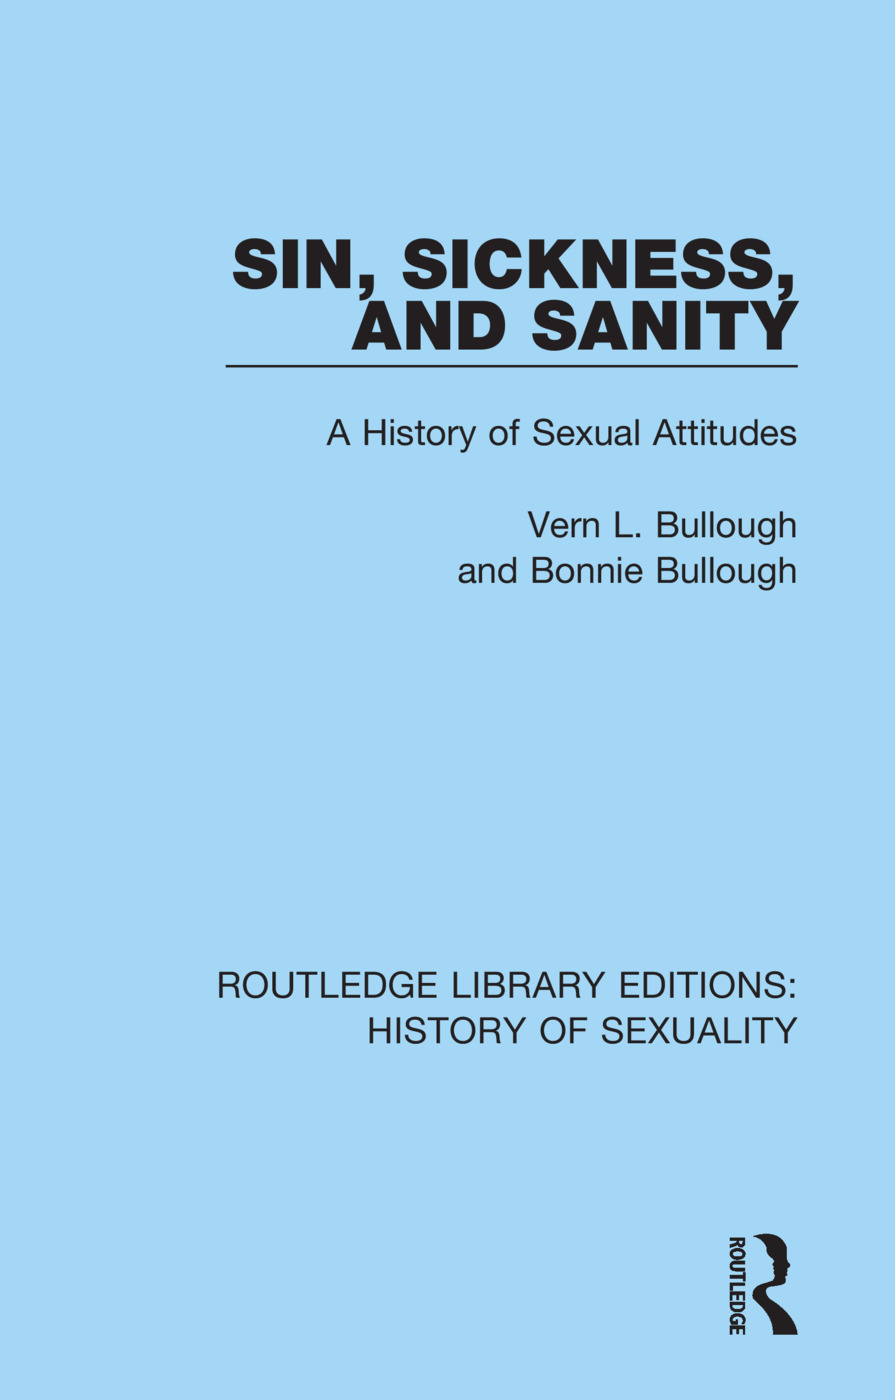 Sin, Sickness and Sanity: A History of Sexual Attitudes book cover